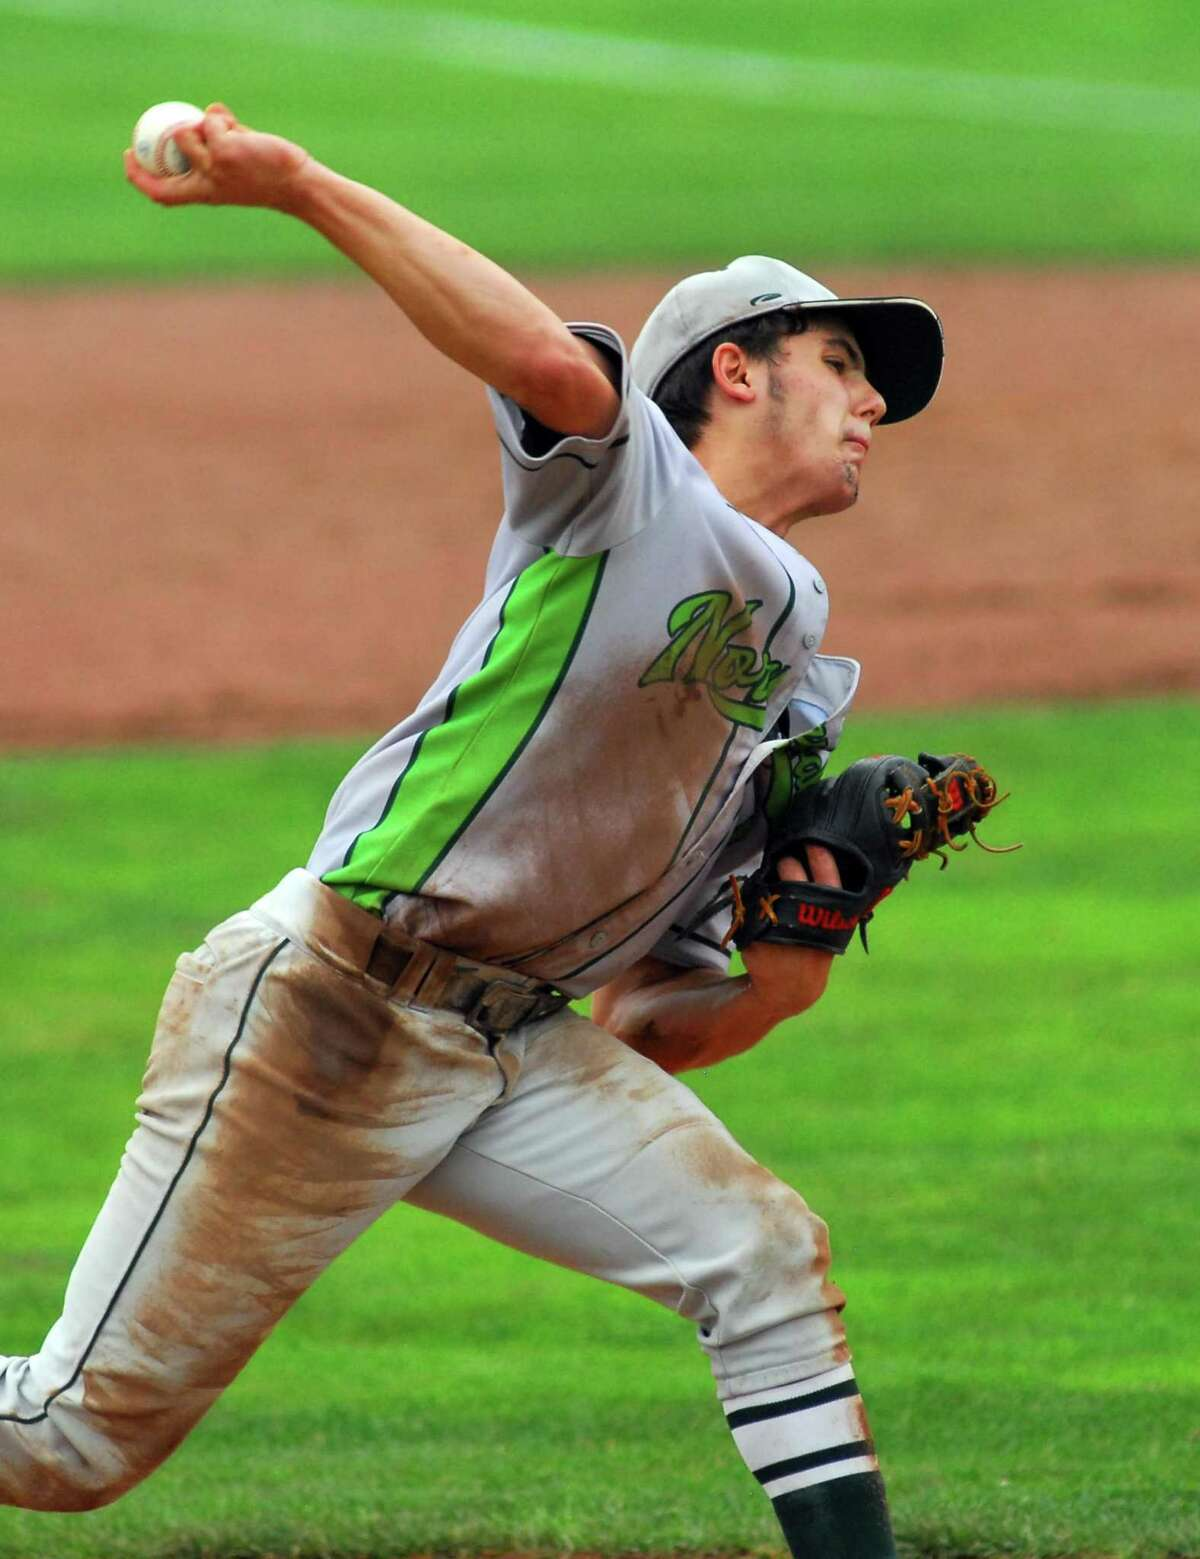 Norwalk's Javier Gonzalez pitches against Westhill during the Class LL state championship game Saturday.